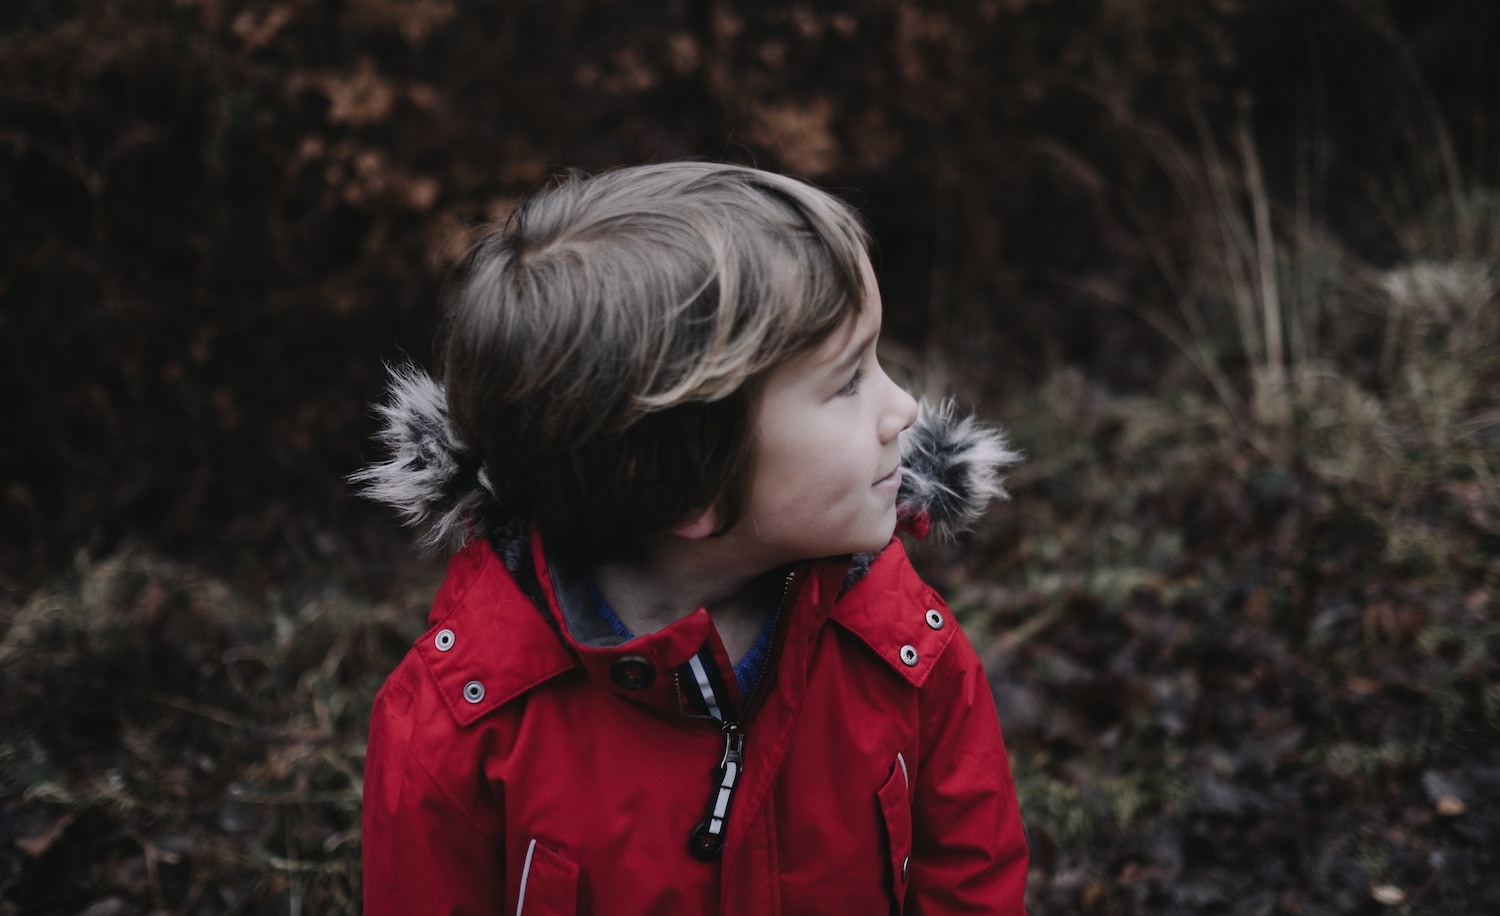 What Are Introverts Like as Children? 7 Characteristics